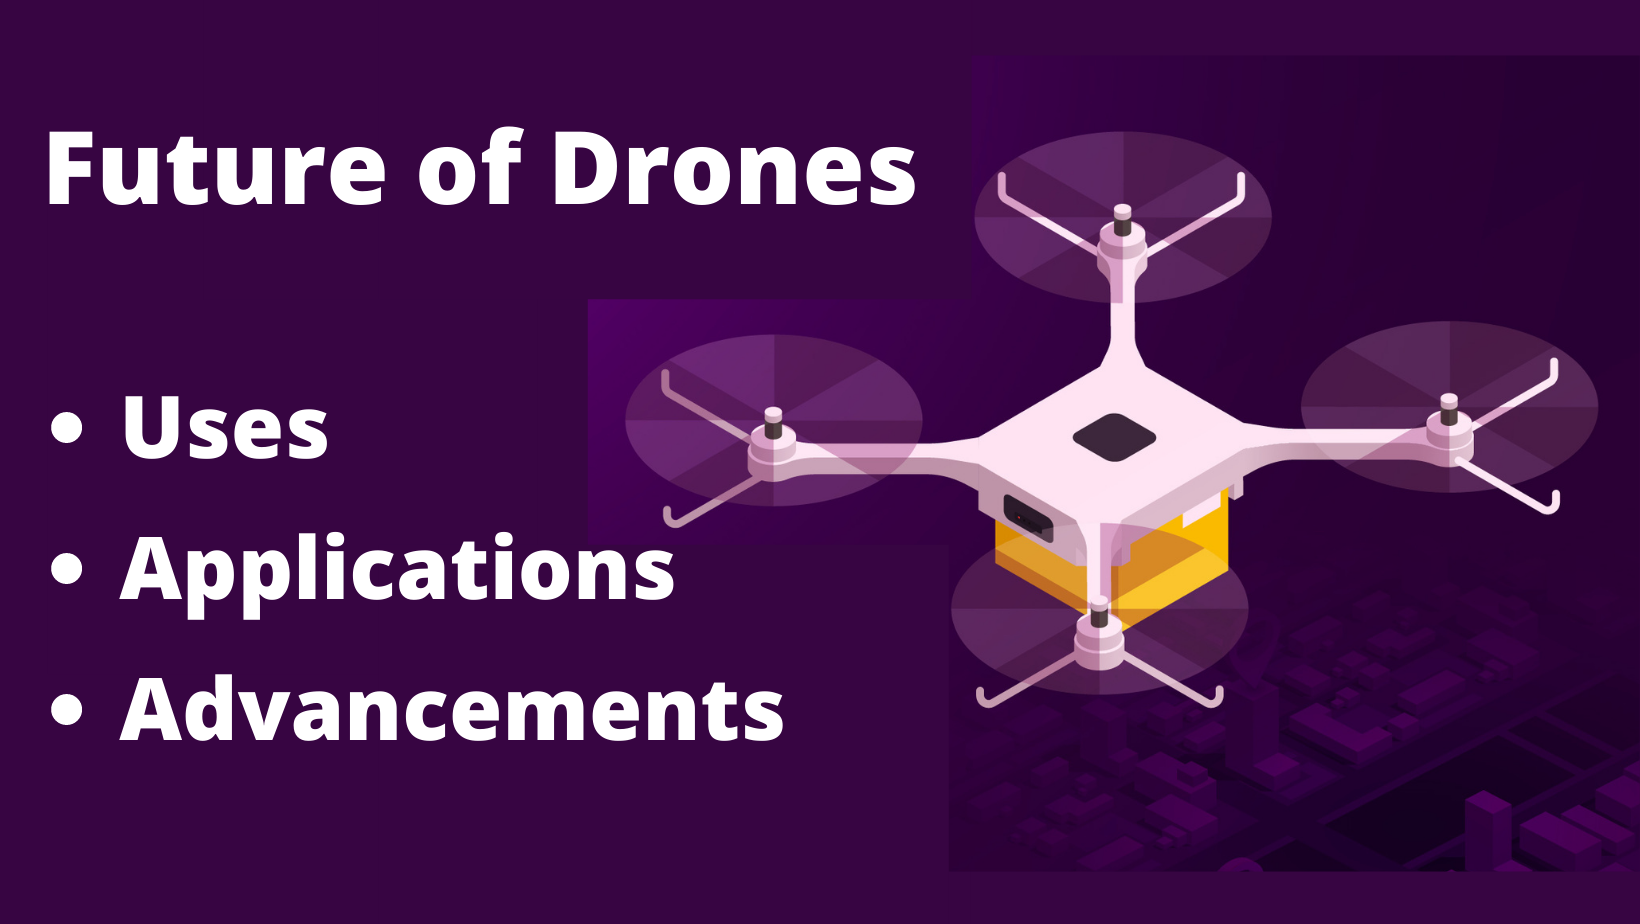 Drone article image